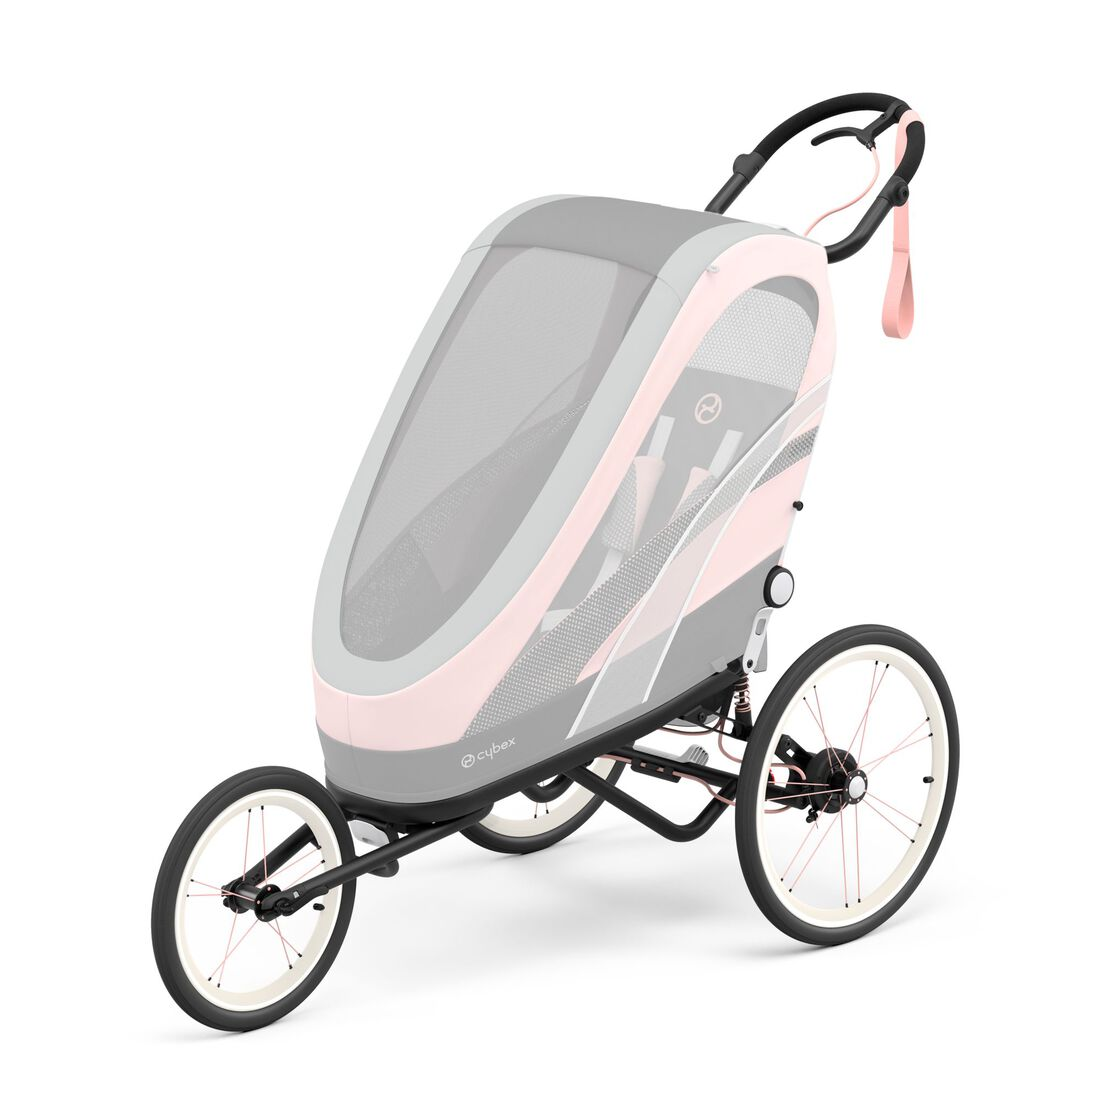 CYBEX Zeno Frame - Black With Pink Details in Black With Pink Details large image number 2